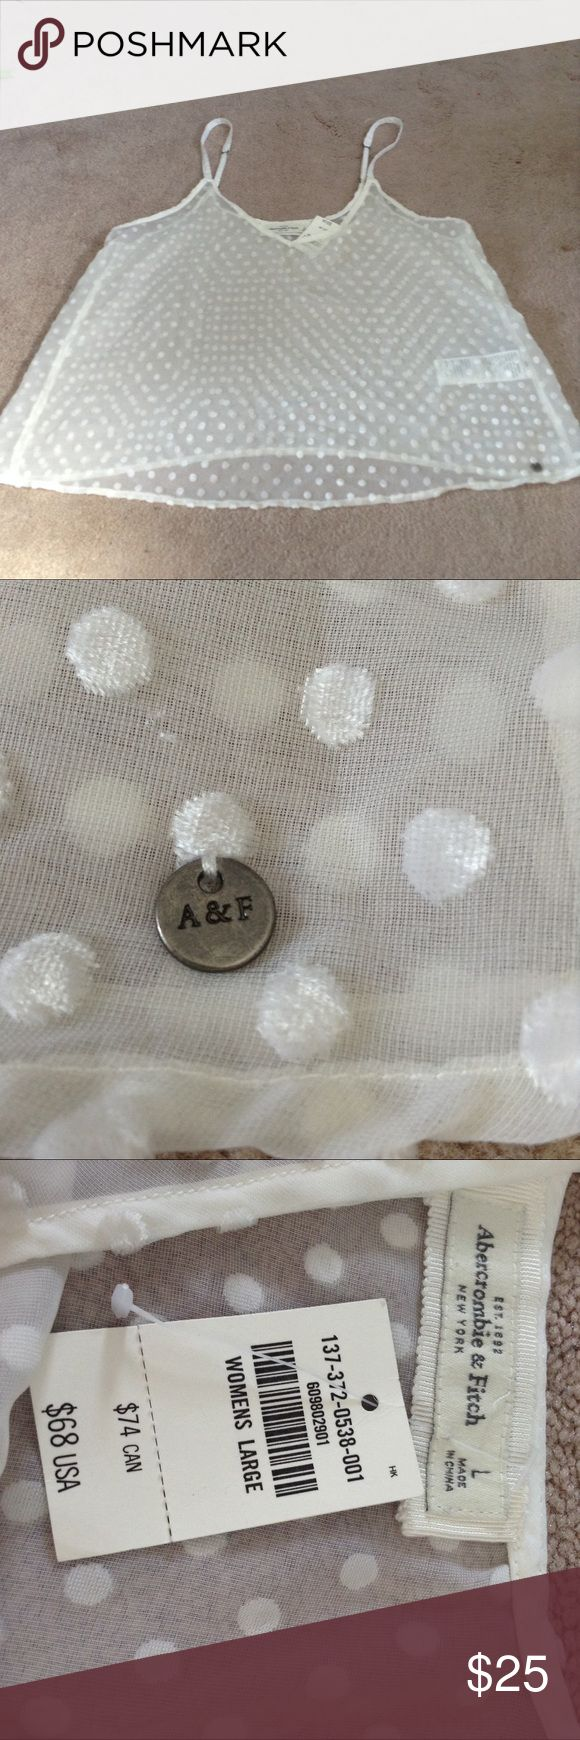 ABERCROMBIE AND FITCH sheer velvet polka dot tank I will be moving August 13th across the United States. I have gone through my closet and pulled out things I never wore and dont fit me, or are in very good condition. Please message me with any questions. Once August 13th arrives I will have to take my items to a goodwill. I appreciate your interest! Abercrombie & Fitch Tops Tank Tops